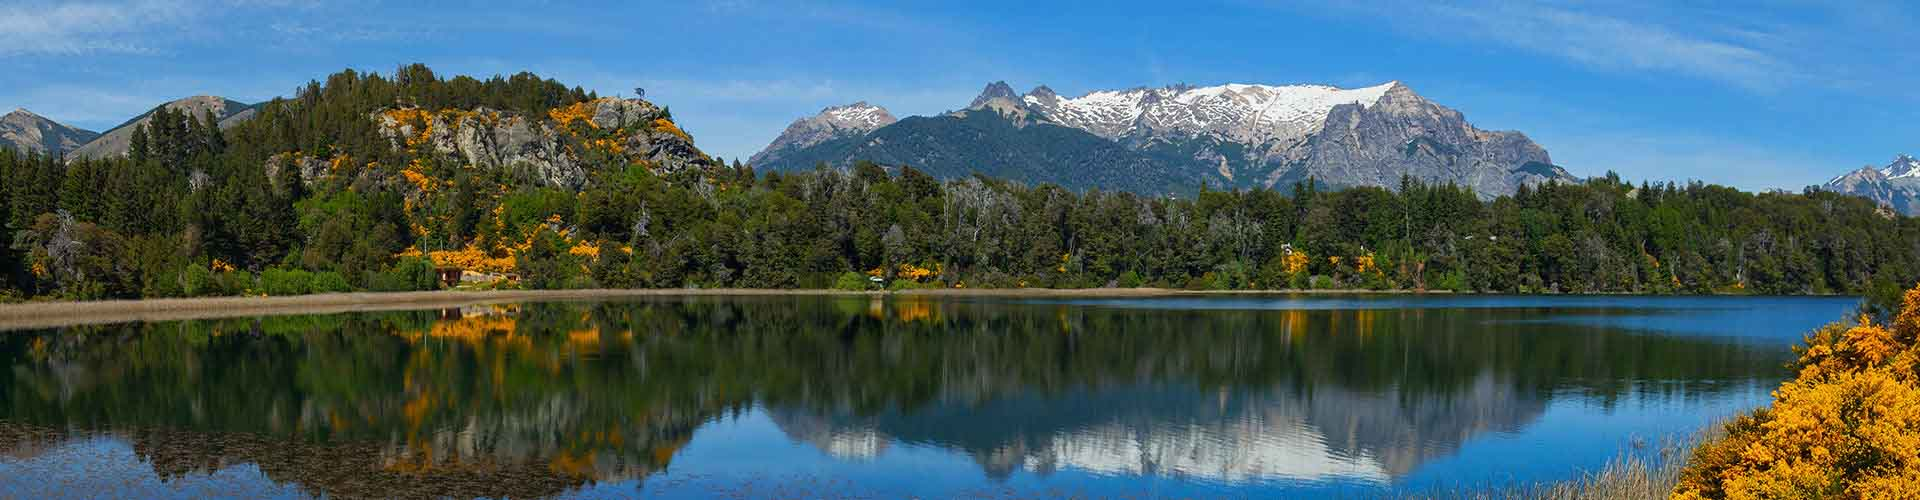 Bariloche – Hostels in Bariloche. Maps for Bariloche, Photos and Reviews for each hostel in Bariloche.